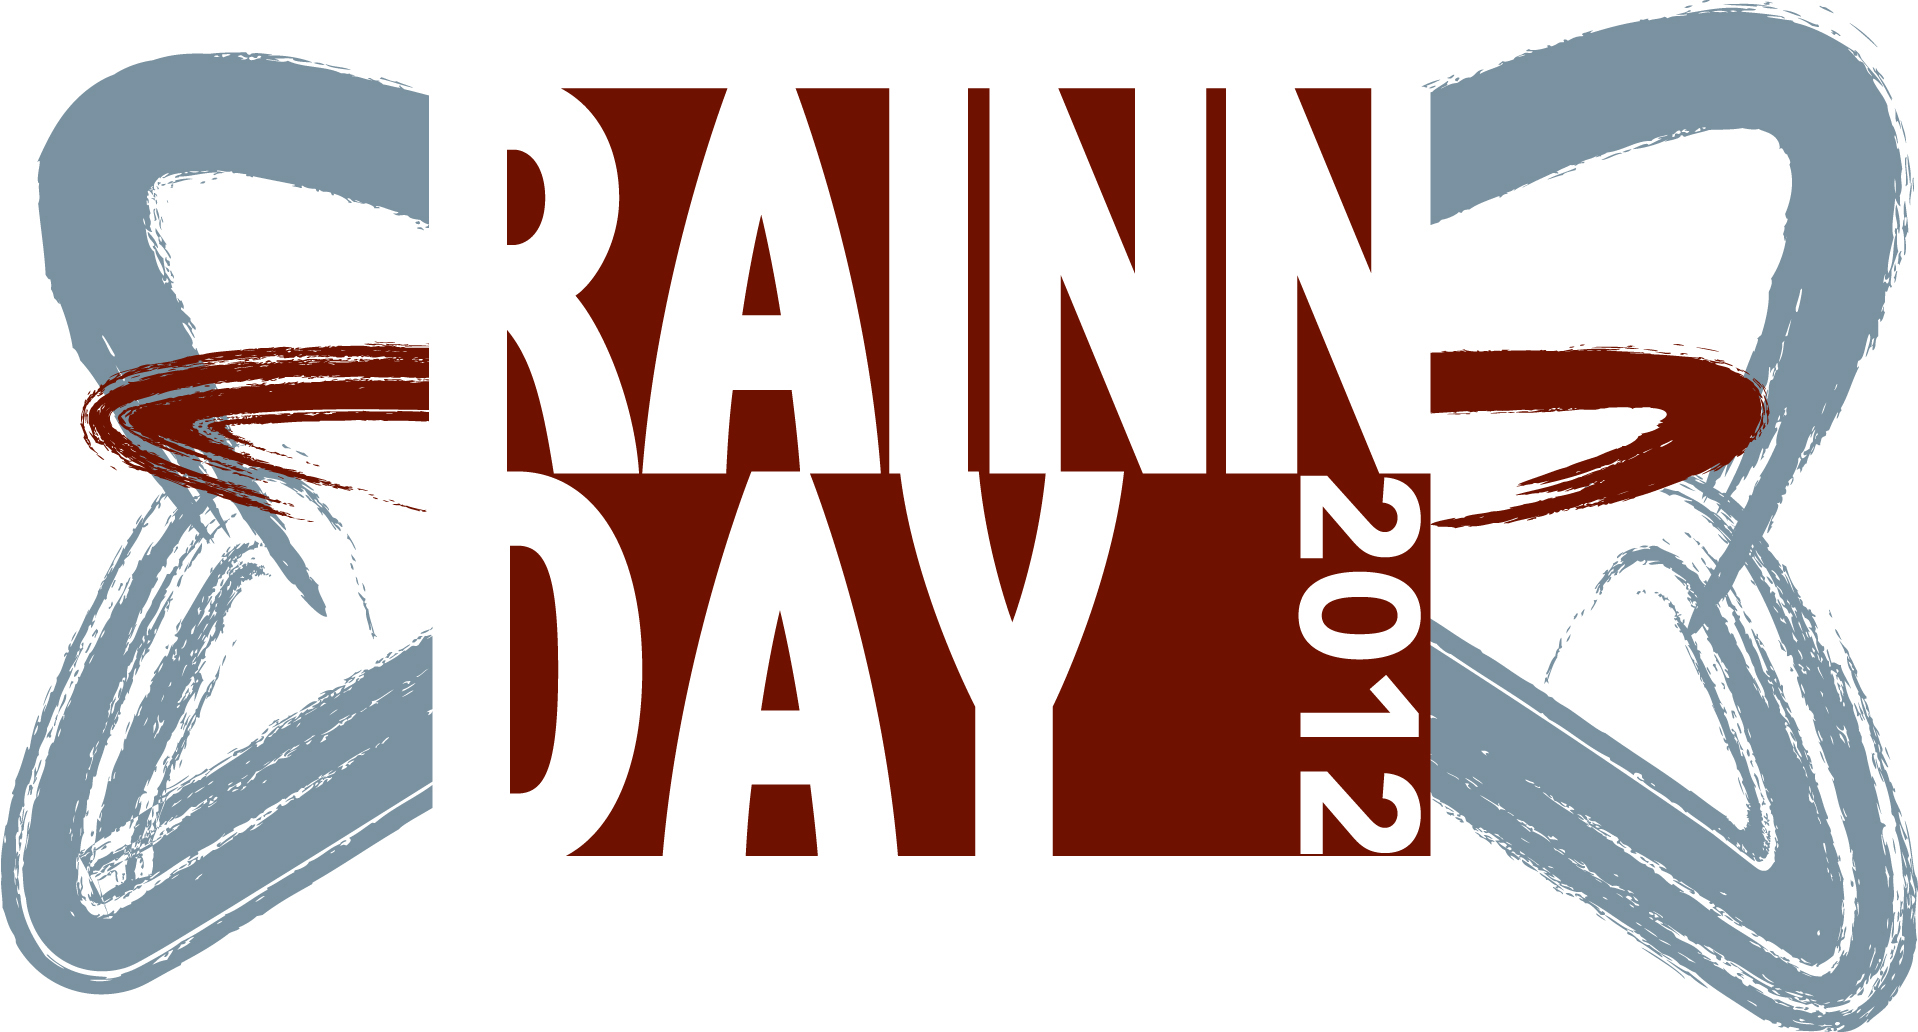 rainn day logo